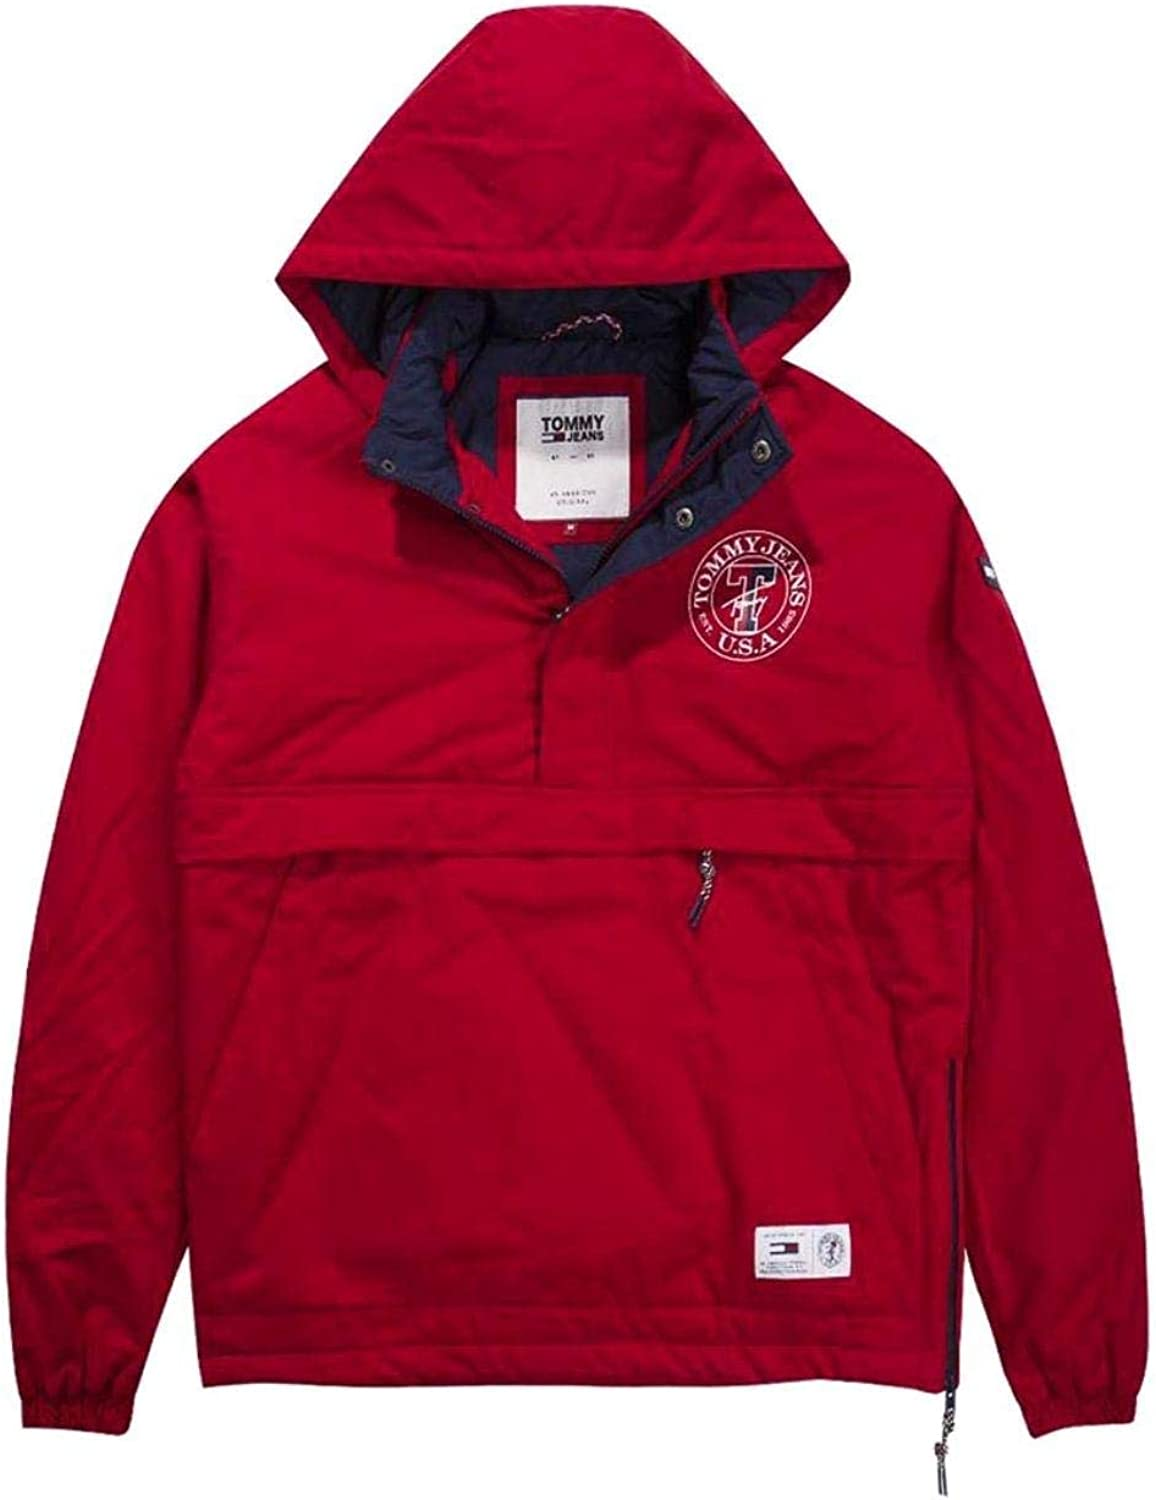 Tommy Hilfiger - Canguro Tommy Jeans para Hombre (XL)